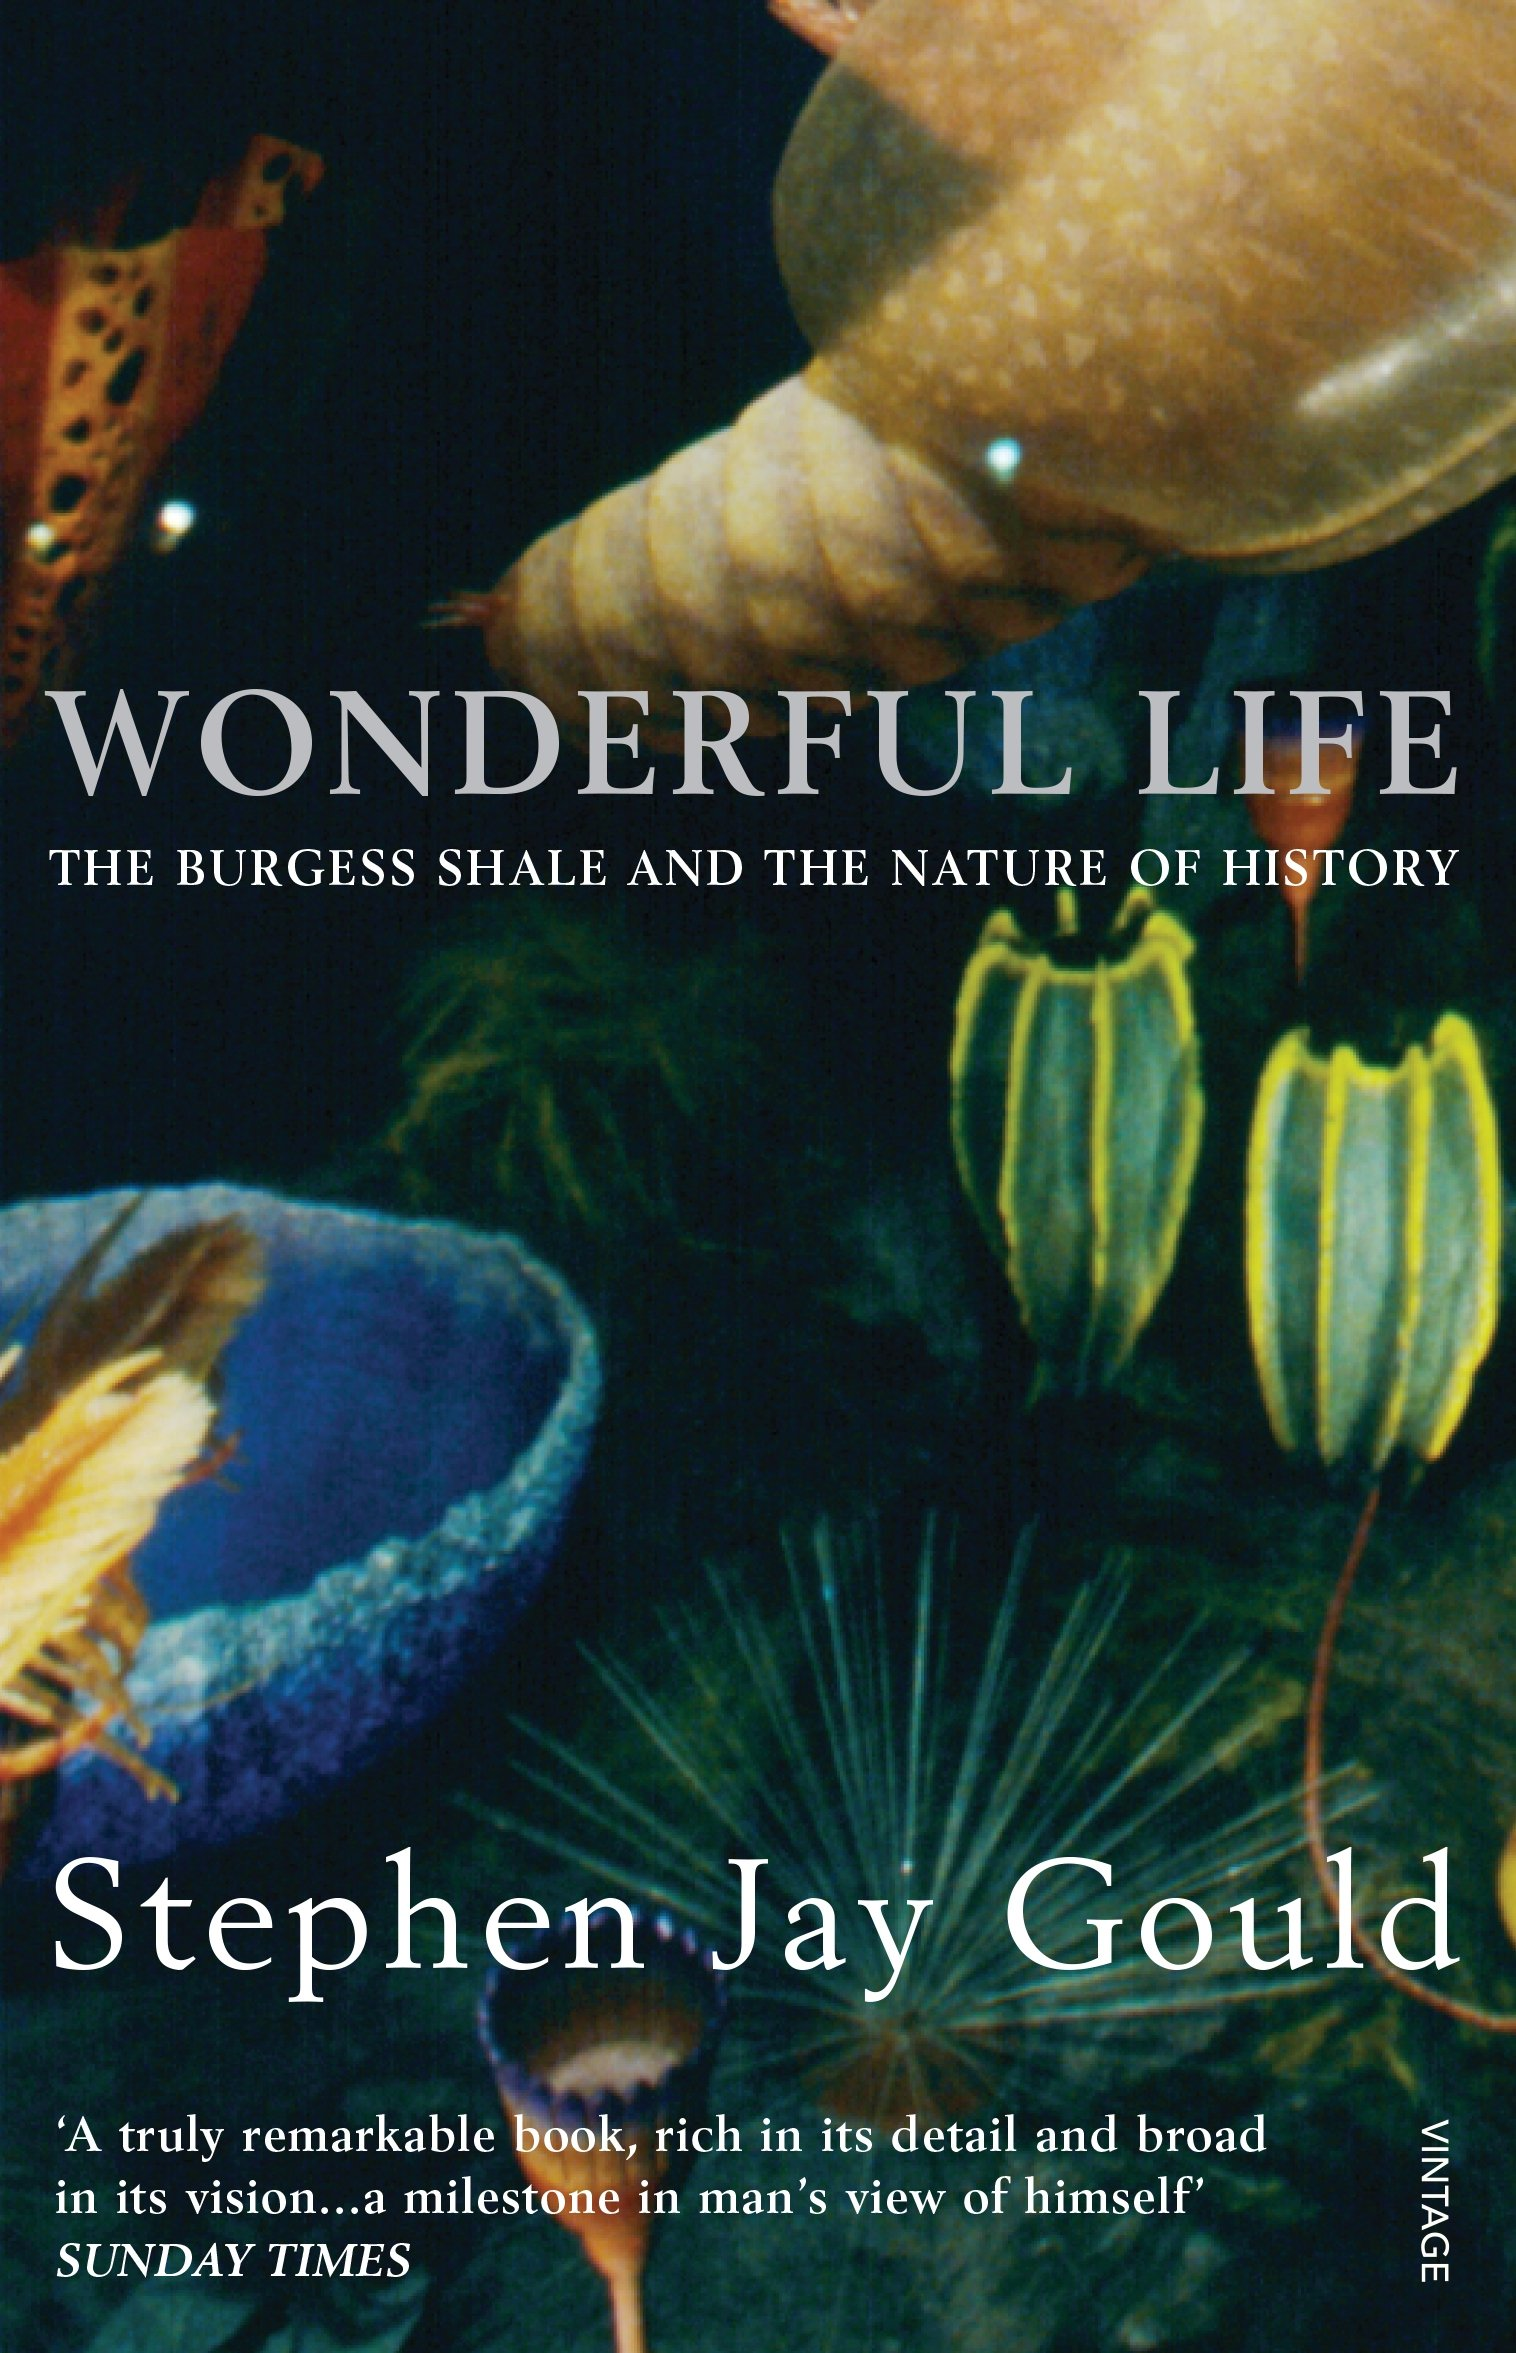 wonderful-life-burgess-shale-and-the-nature-of-history